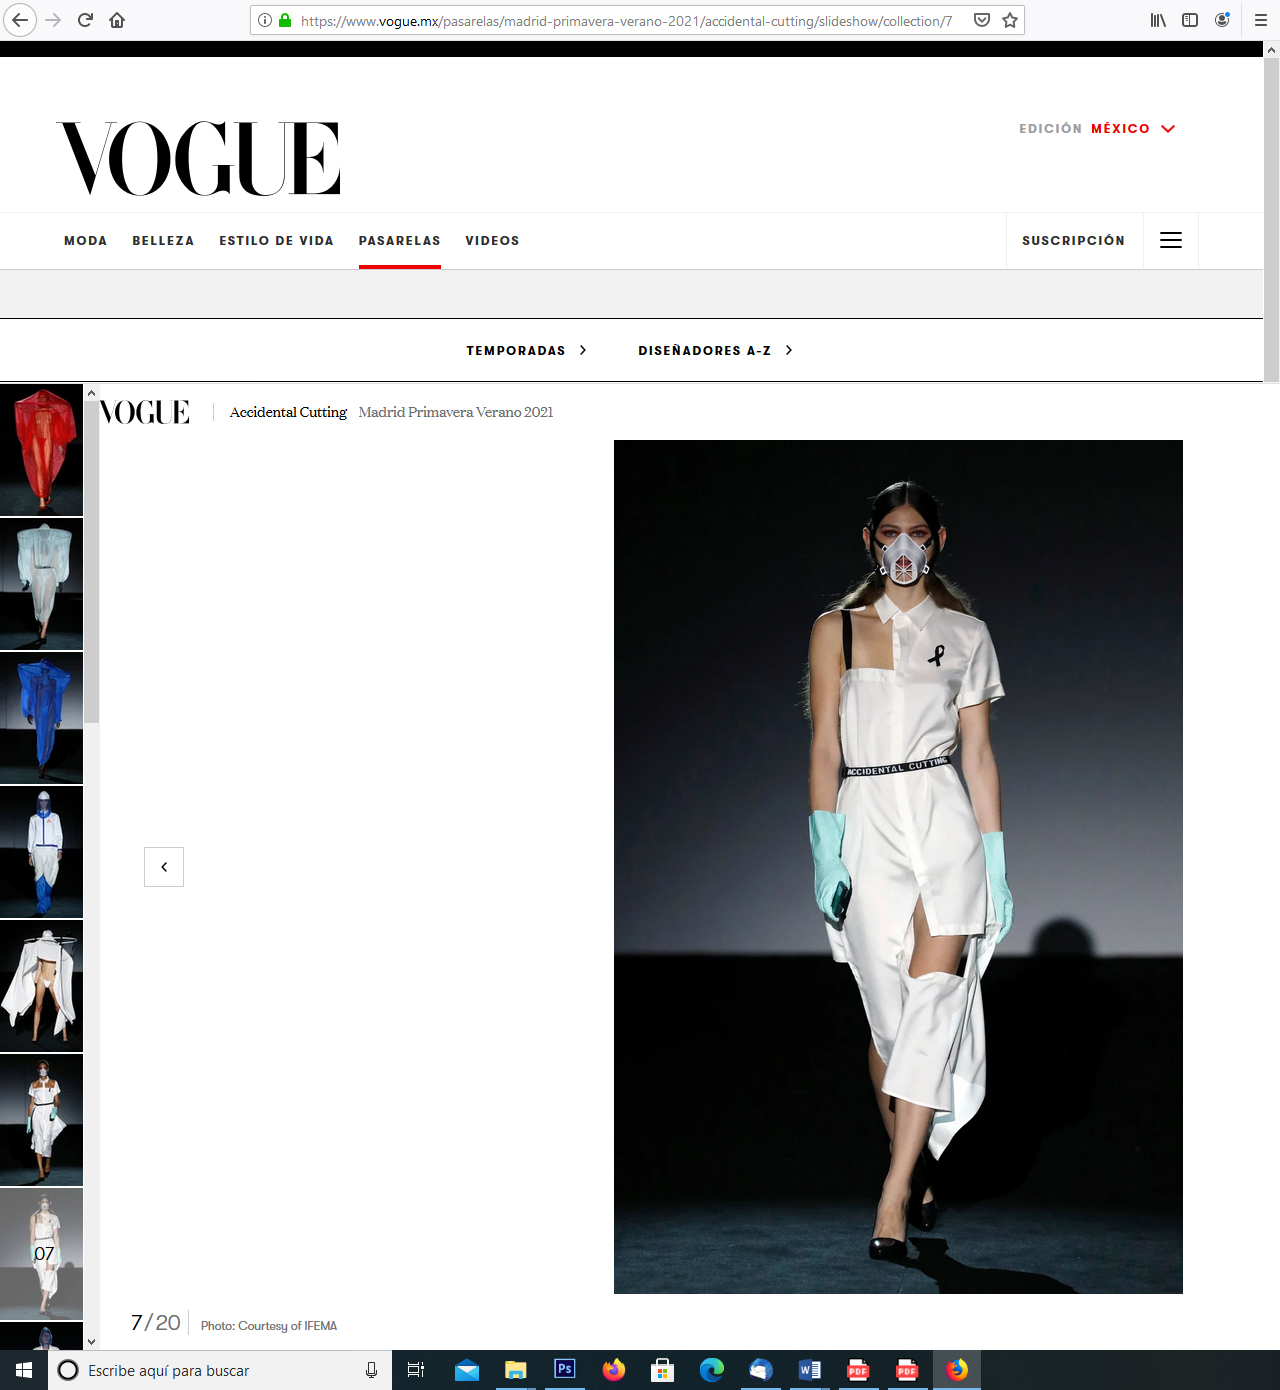 VOGUE Mexico- Accidental Cutting